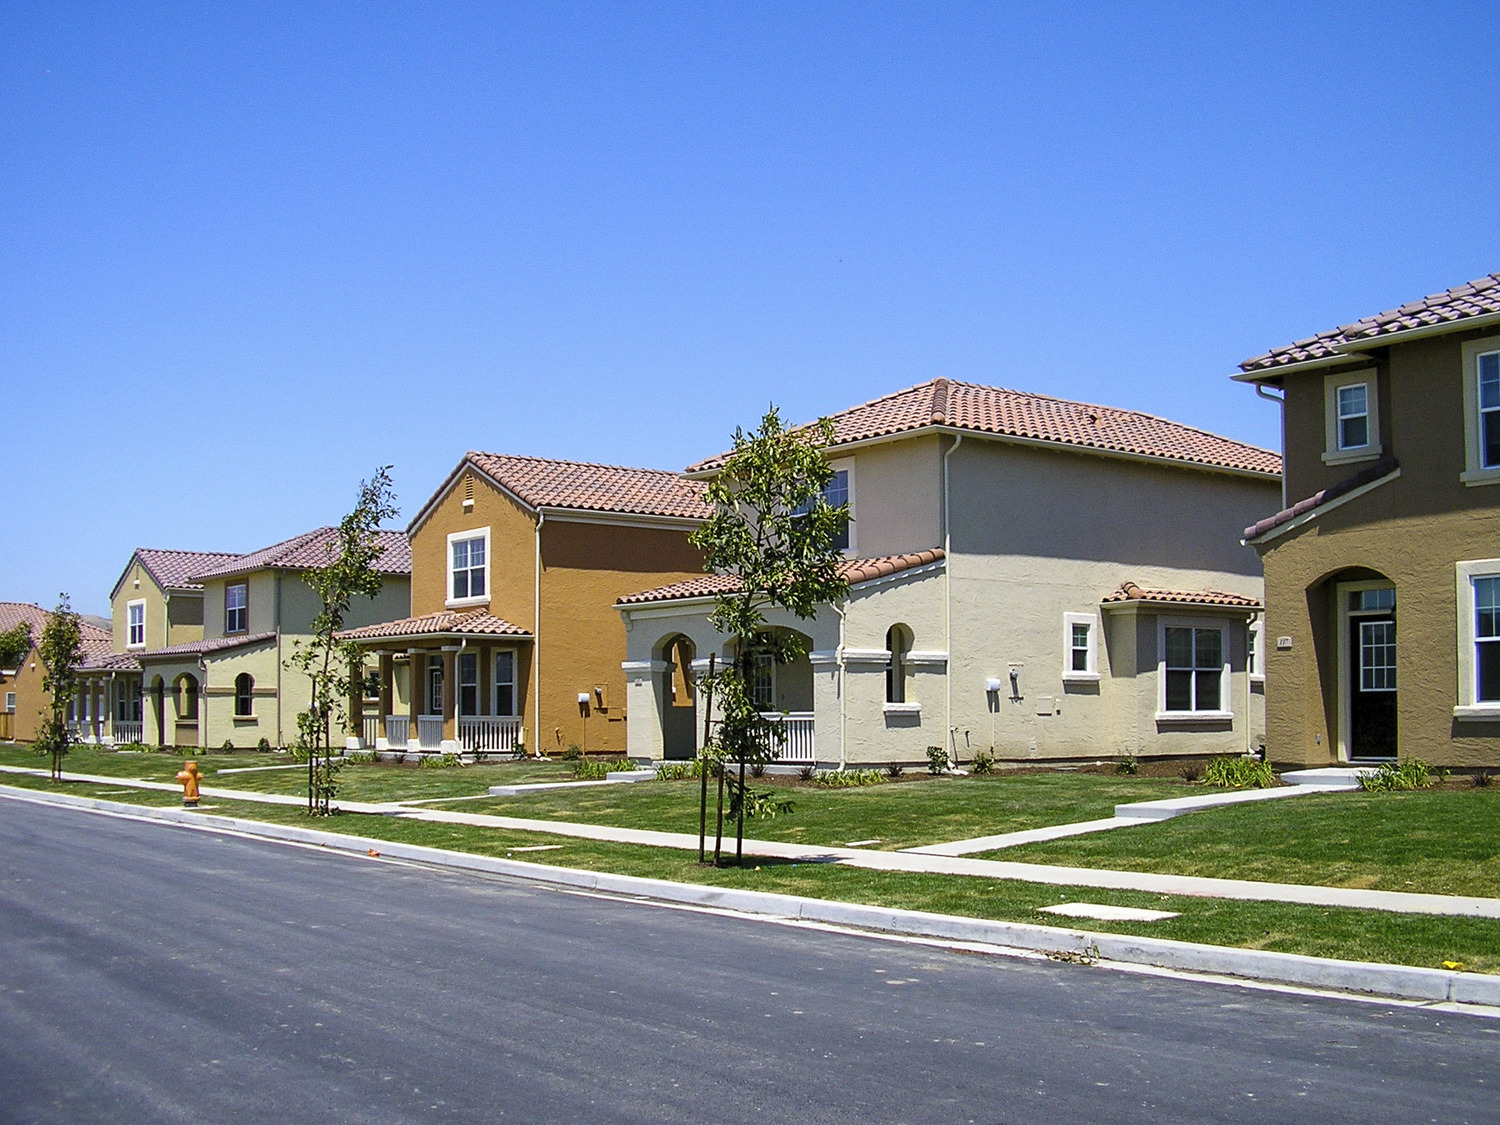 CBG builds The Village at Camp Parks, a 114 Single-Family Homes and Neighborhood Center in Dublin, CA - Image #1